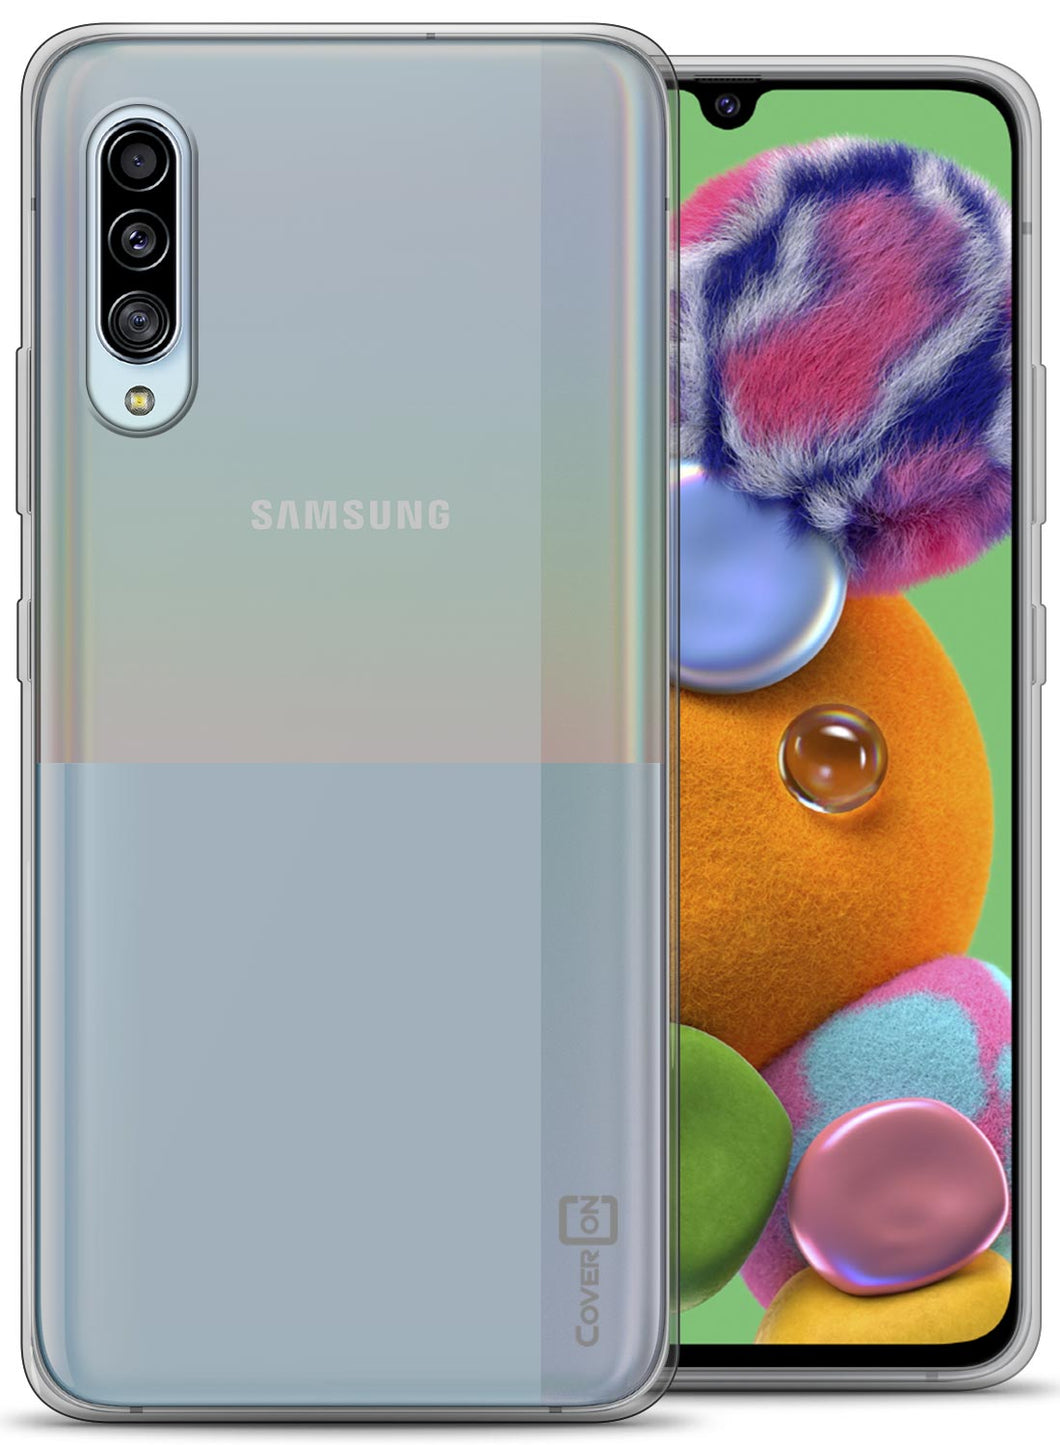 Samsung Galaxy A90 5G Case - Slim TPU Rubber Phone Cover - FlexGuard Series